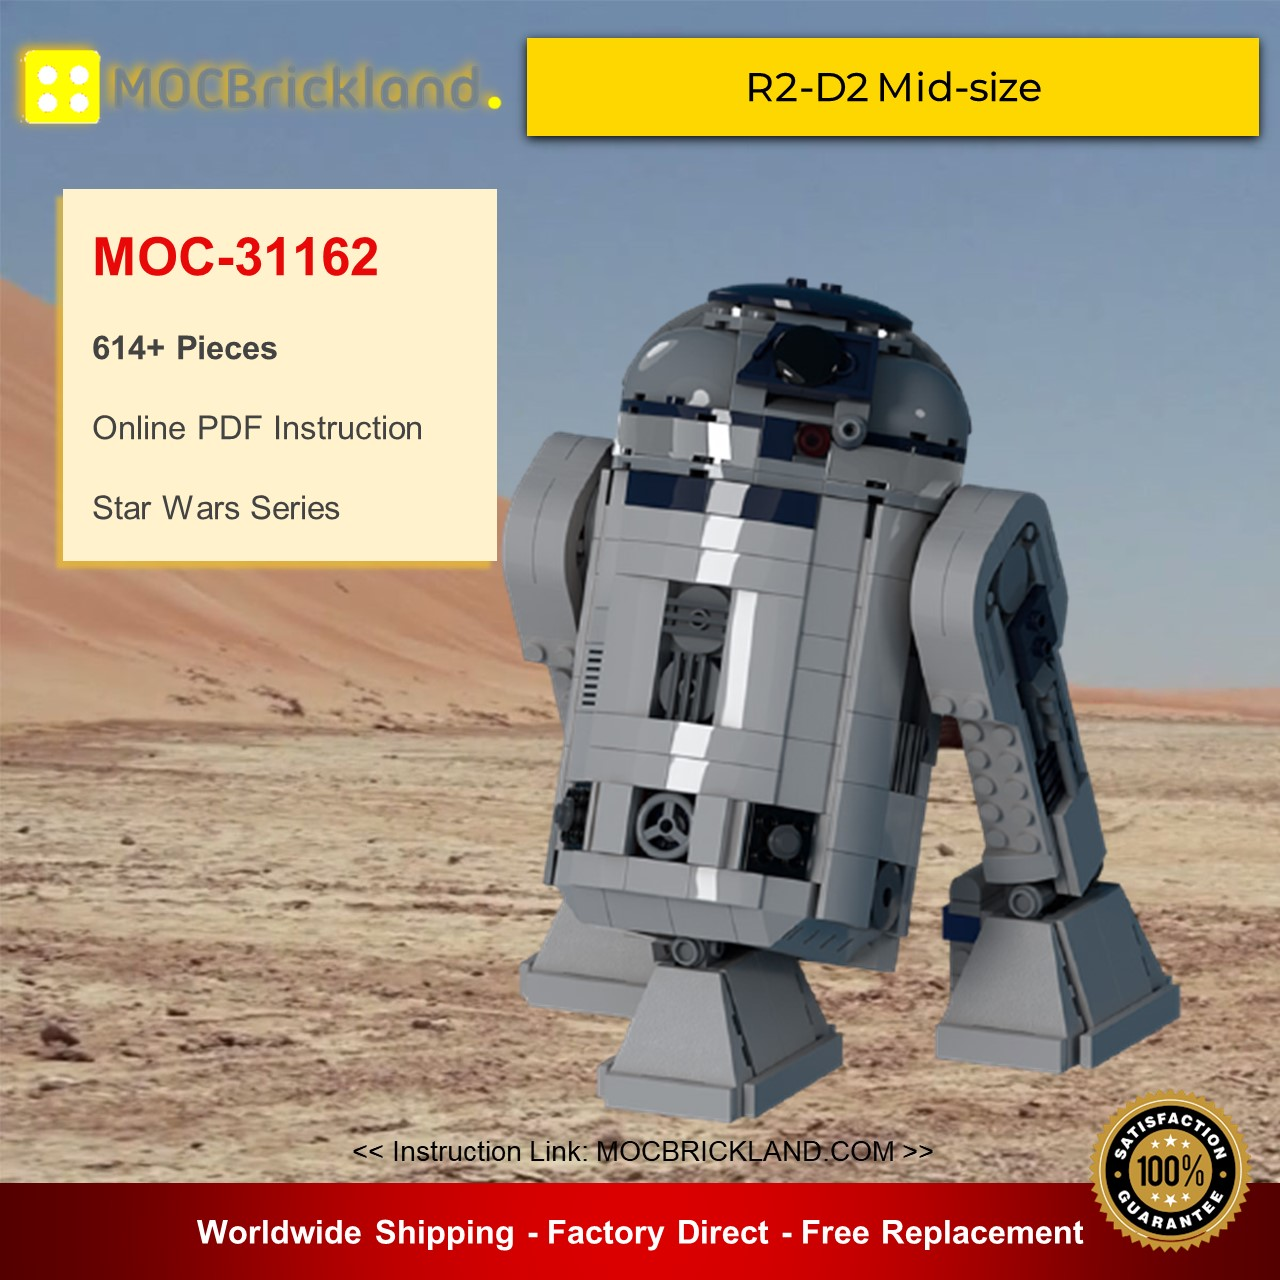 Star Wars MOC-31162 R2-D2 Mid-size By wheelsspinnin MOCBRICKLAND